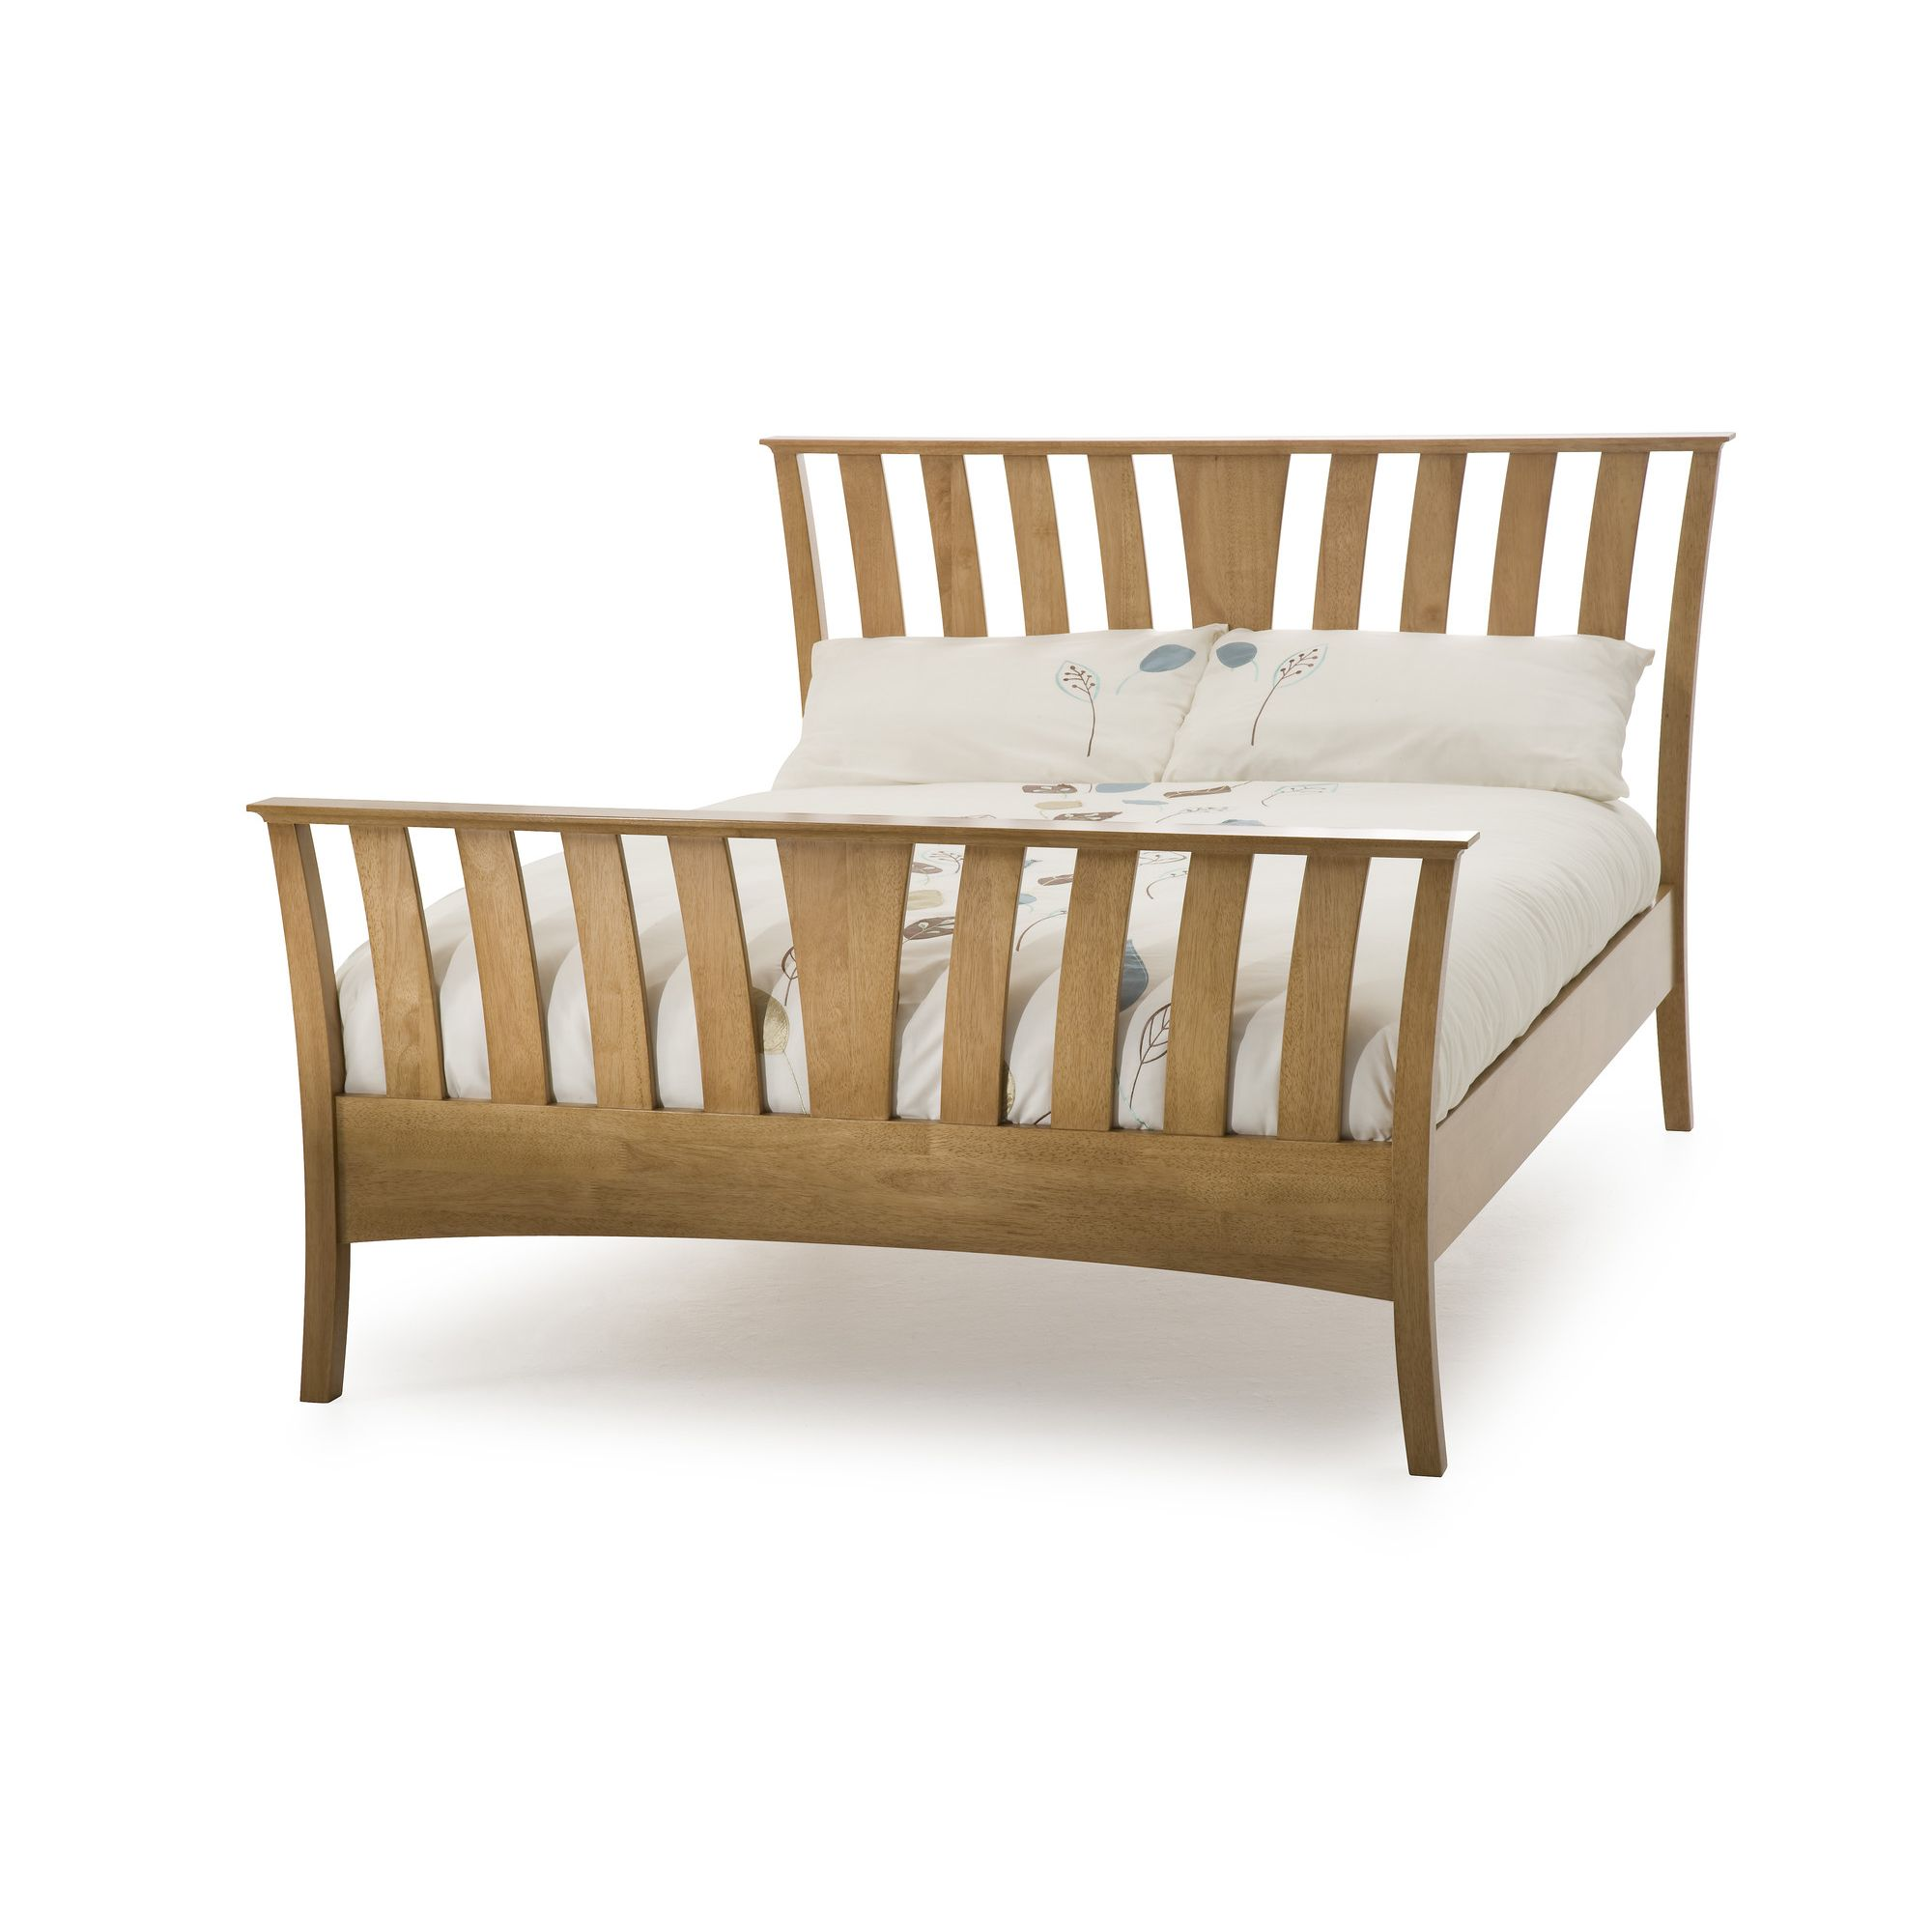 Serene Furnishings Ordelia Bed - Walnut - King at Tesco Direct